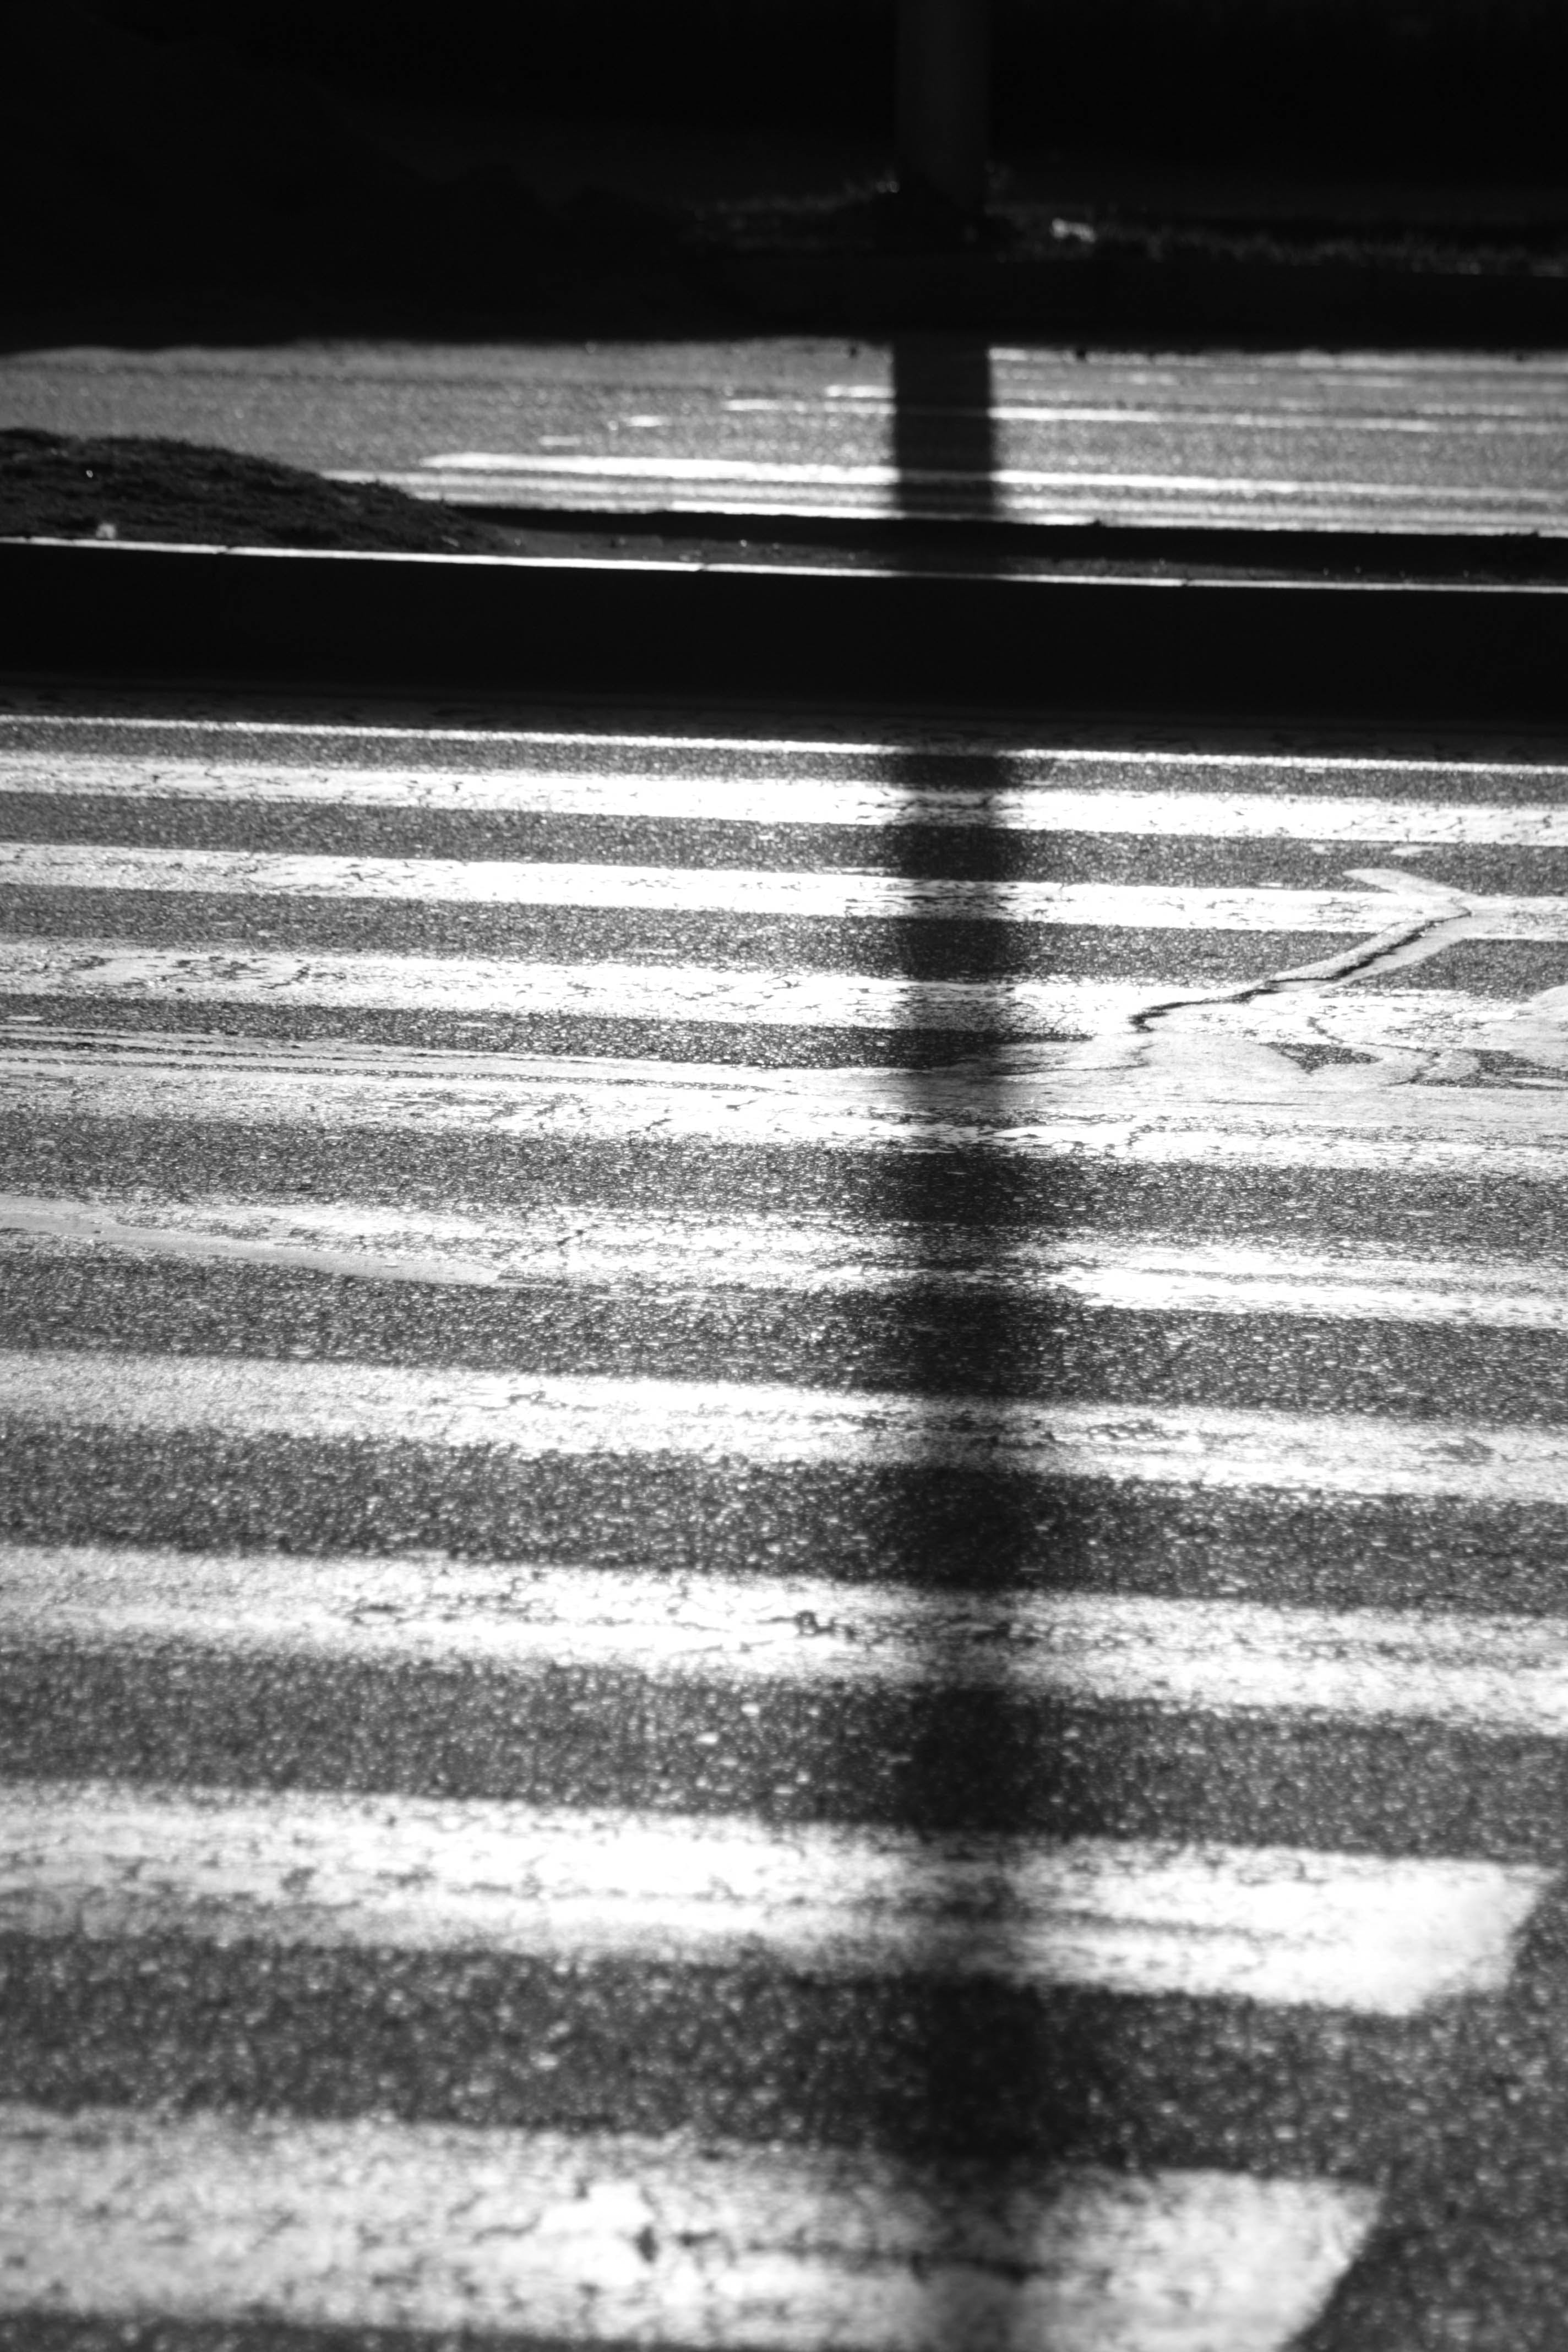 Grayscale Photography Of Pedestrian Lane